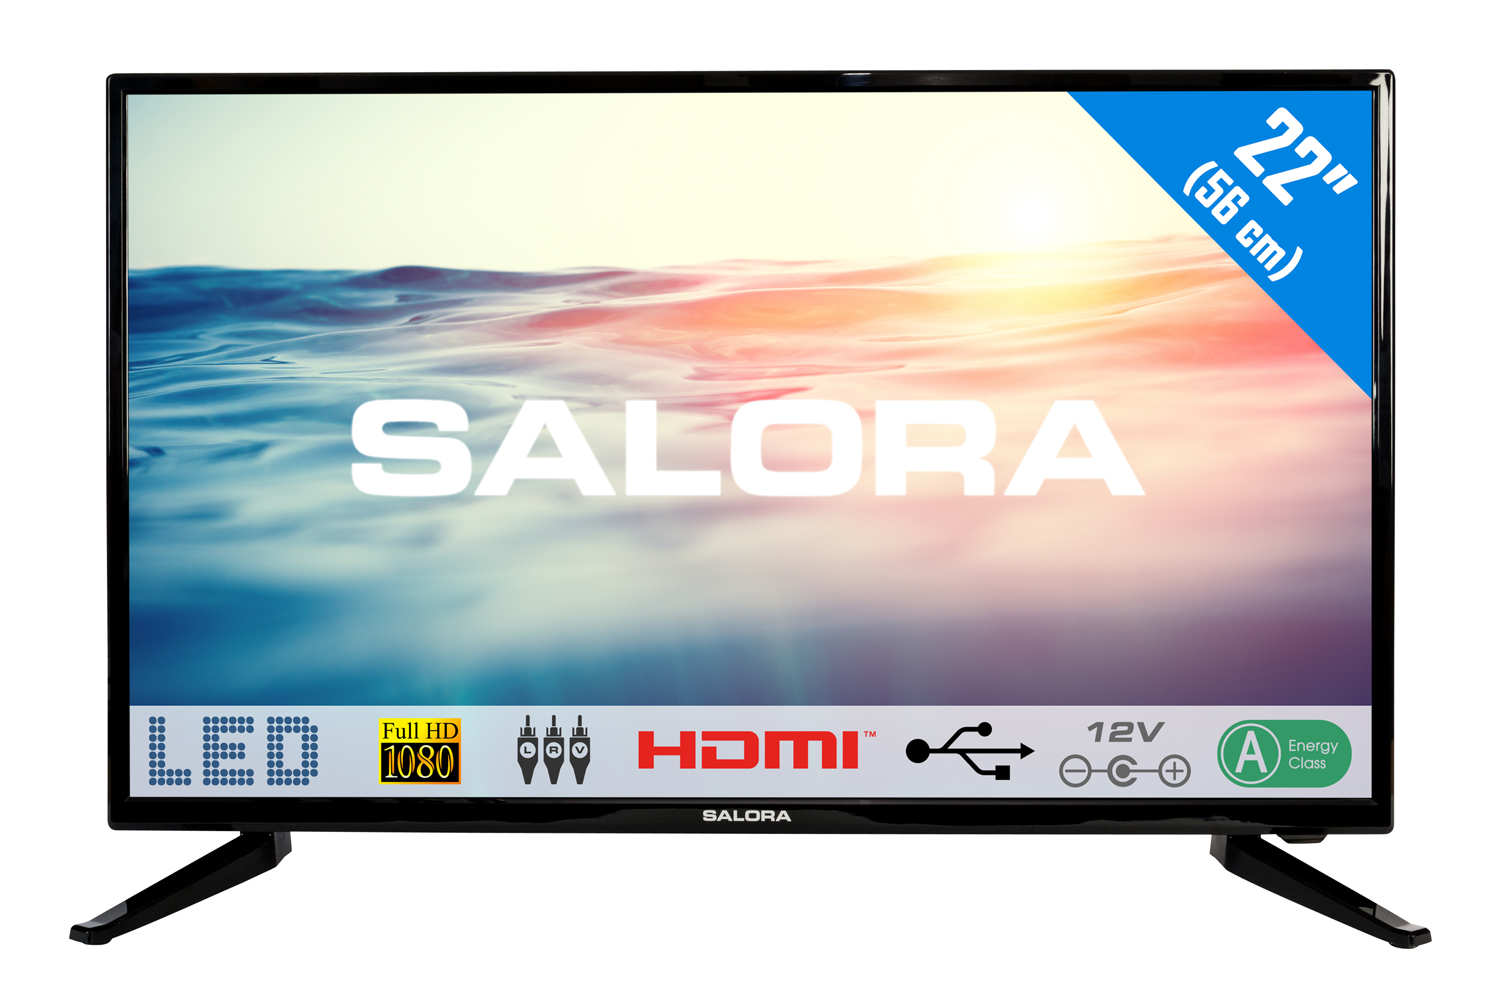 22LED1600, 22''/55,88cm  LED TV, FULL HD 12v usb-mediaplayer HDMI scart analog tuner a